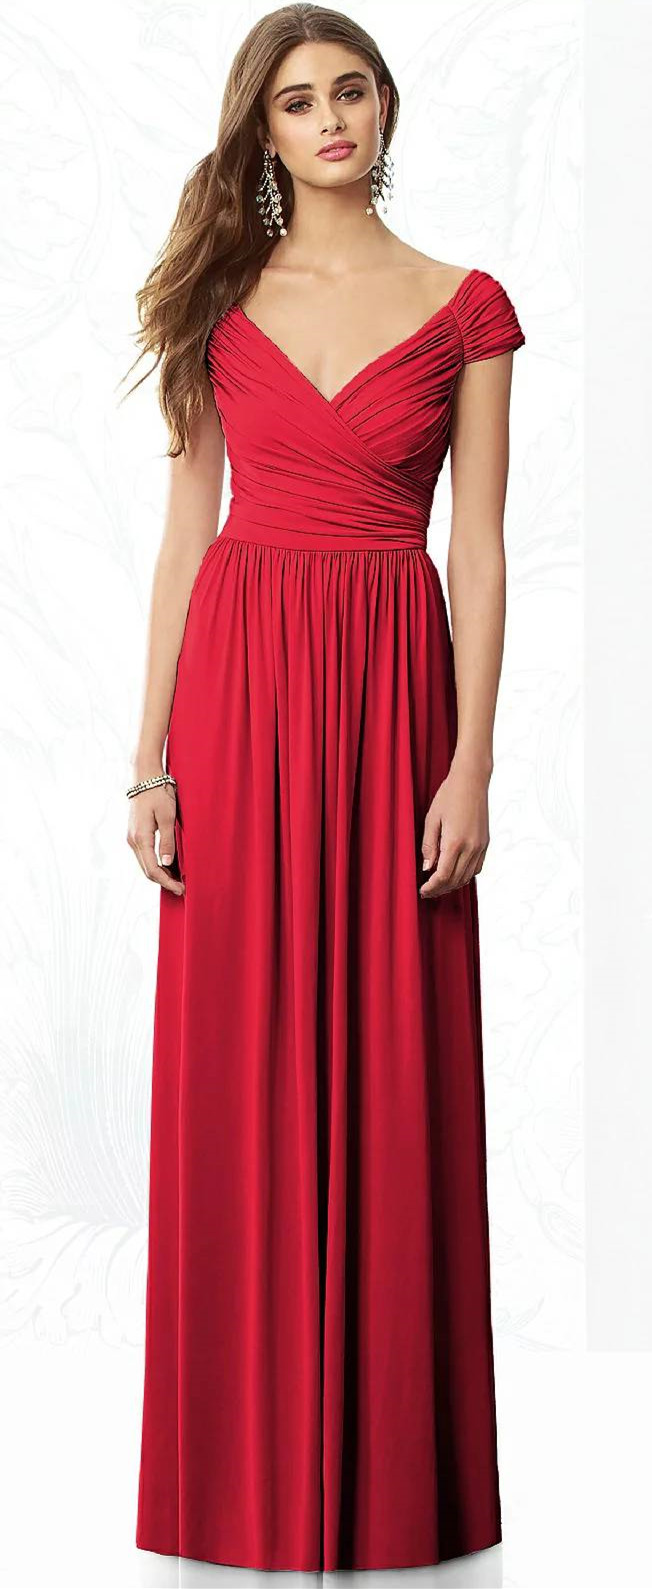 20 most popular red bridesmaid dresses for different shapes